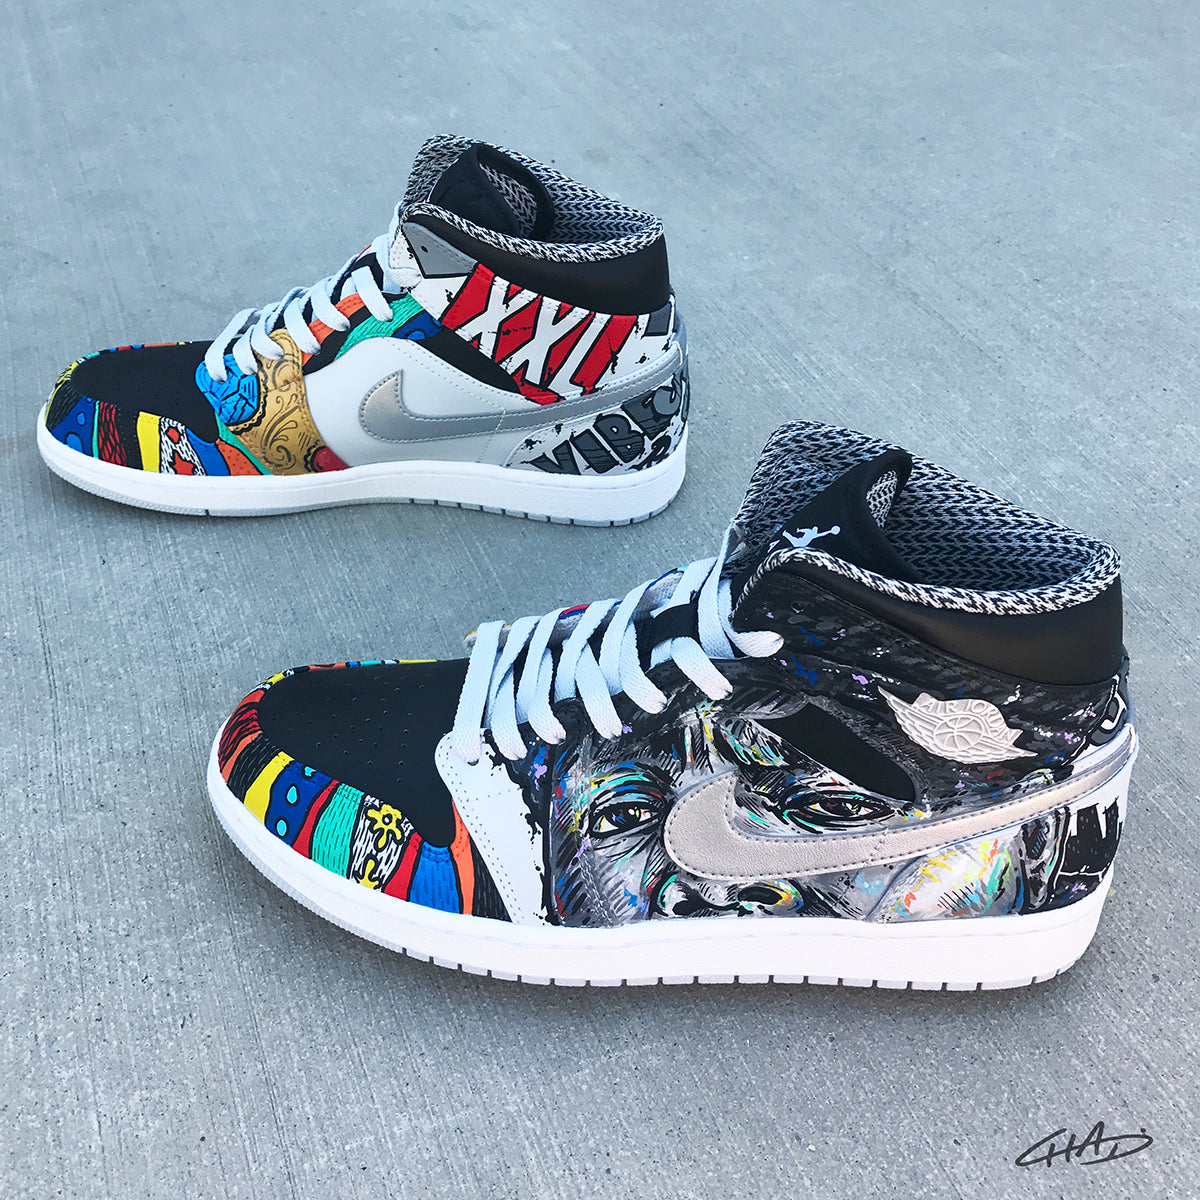 Notorious - Custom Hand Painted Jordan Retro 1 Shoes